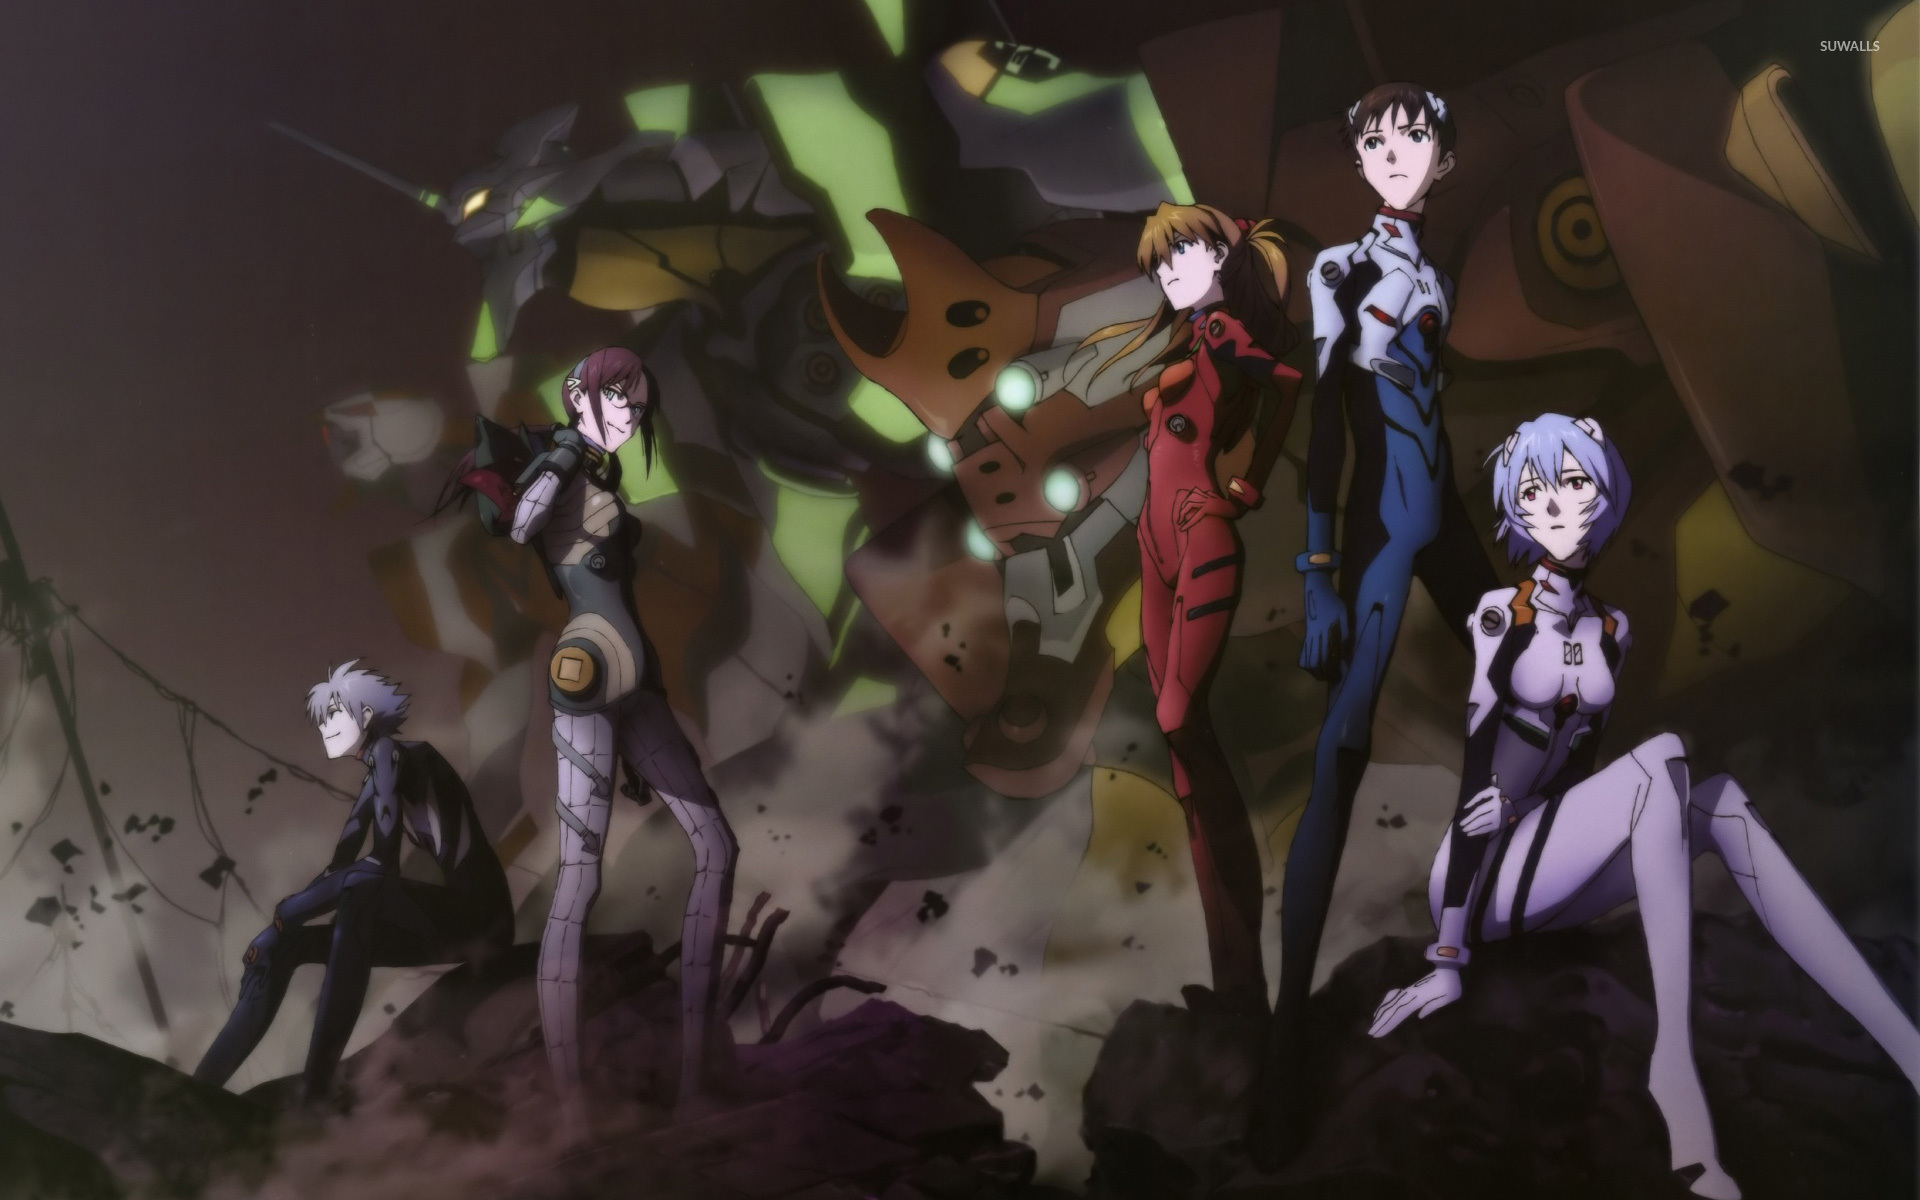 Neon Genesis Evangelion Wallpaper Anime Wallpapers 4028